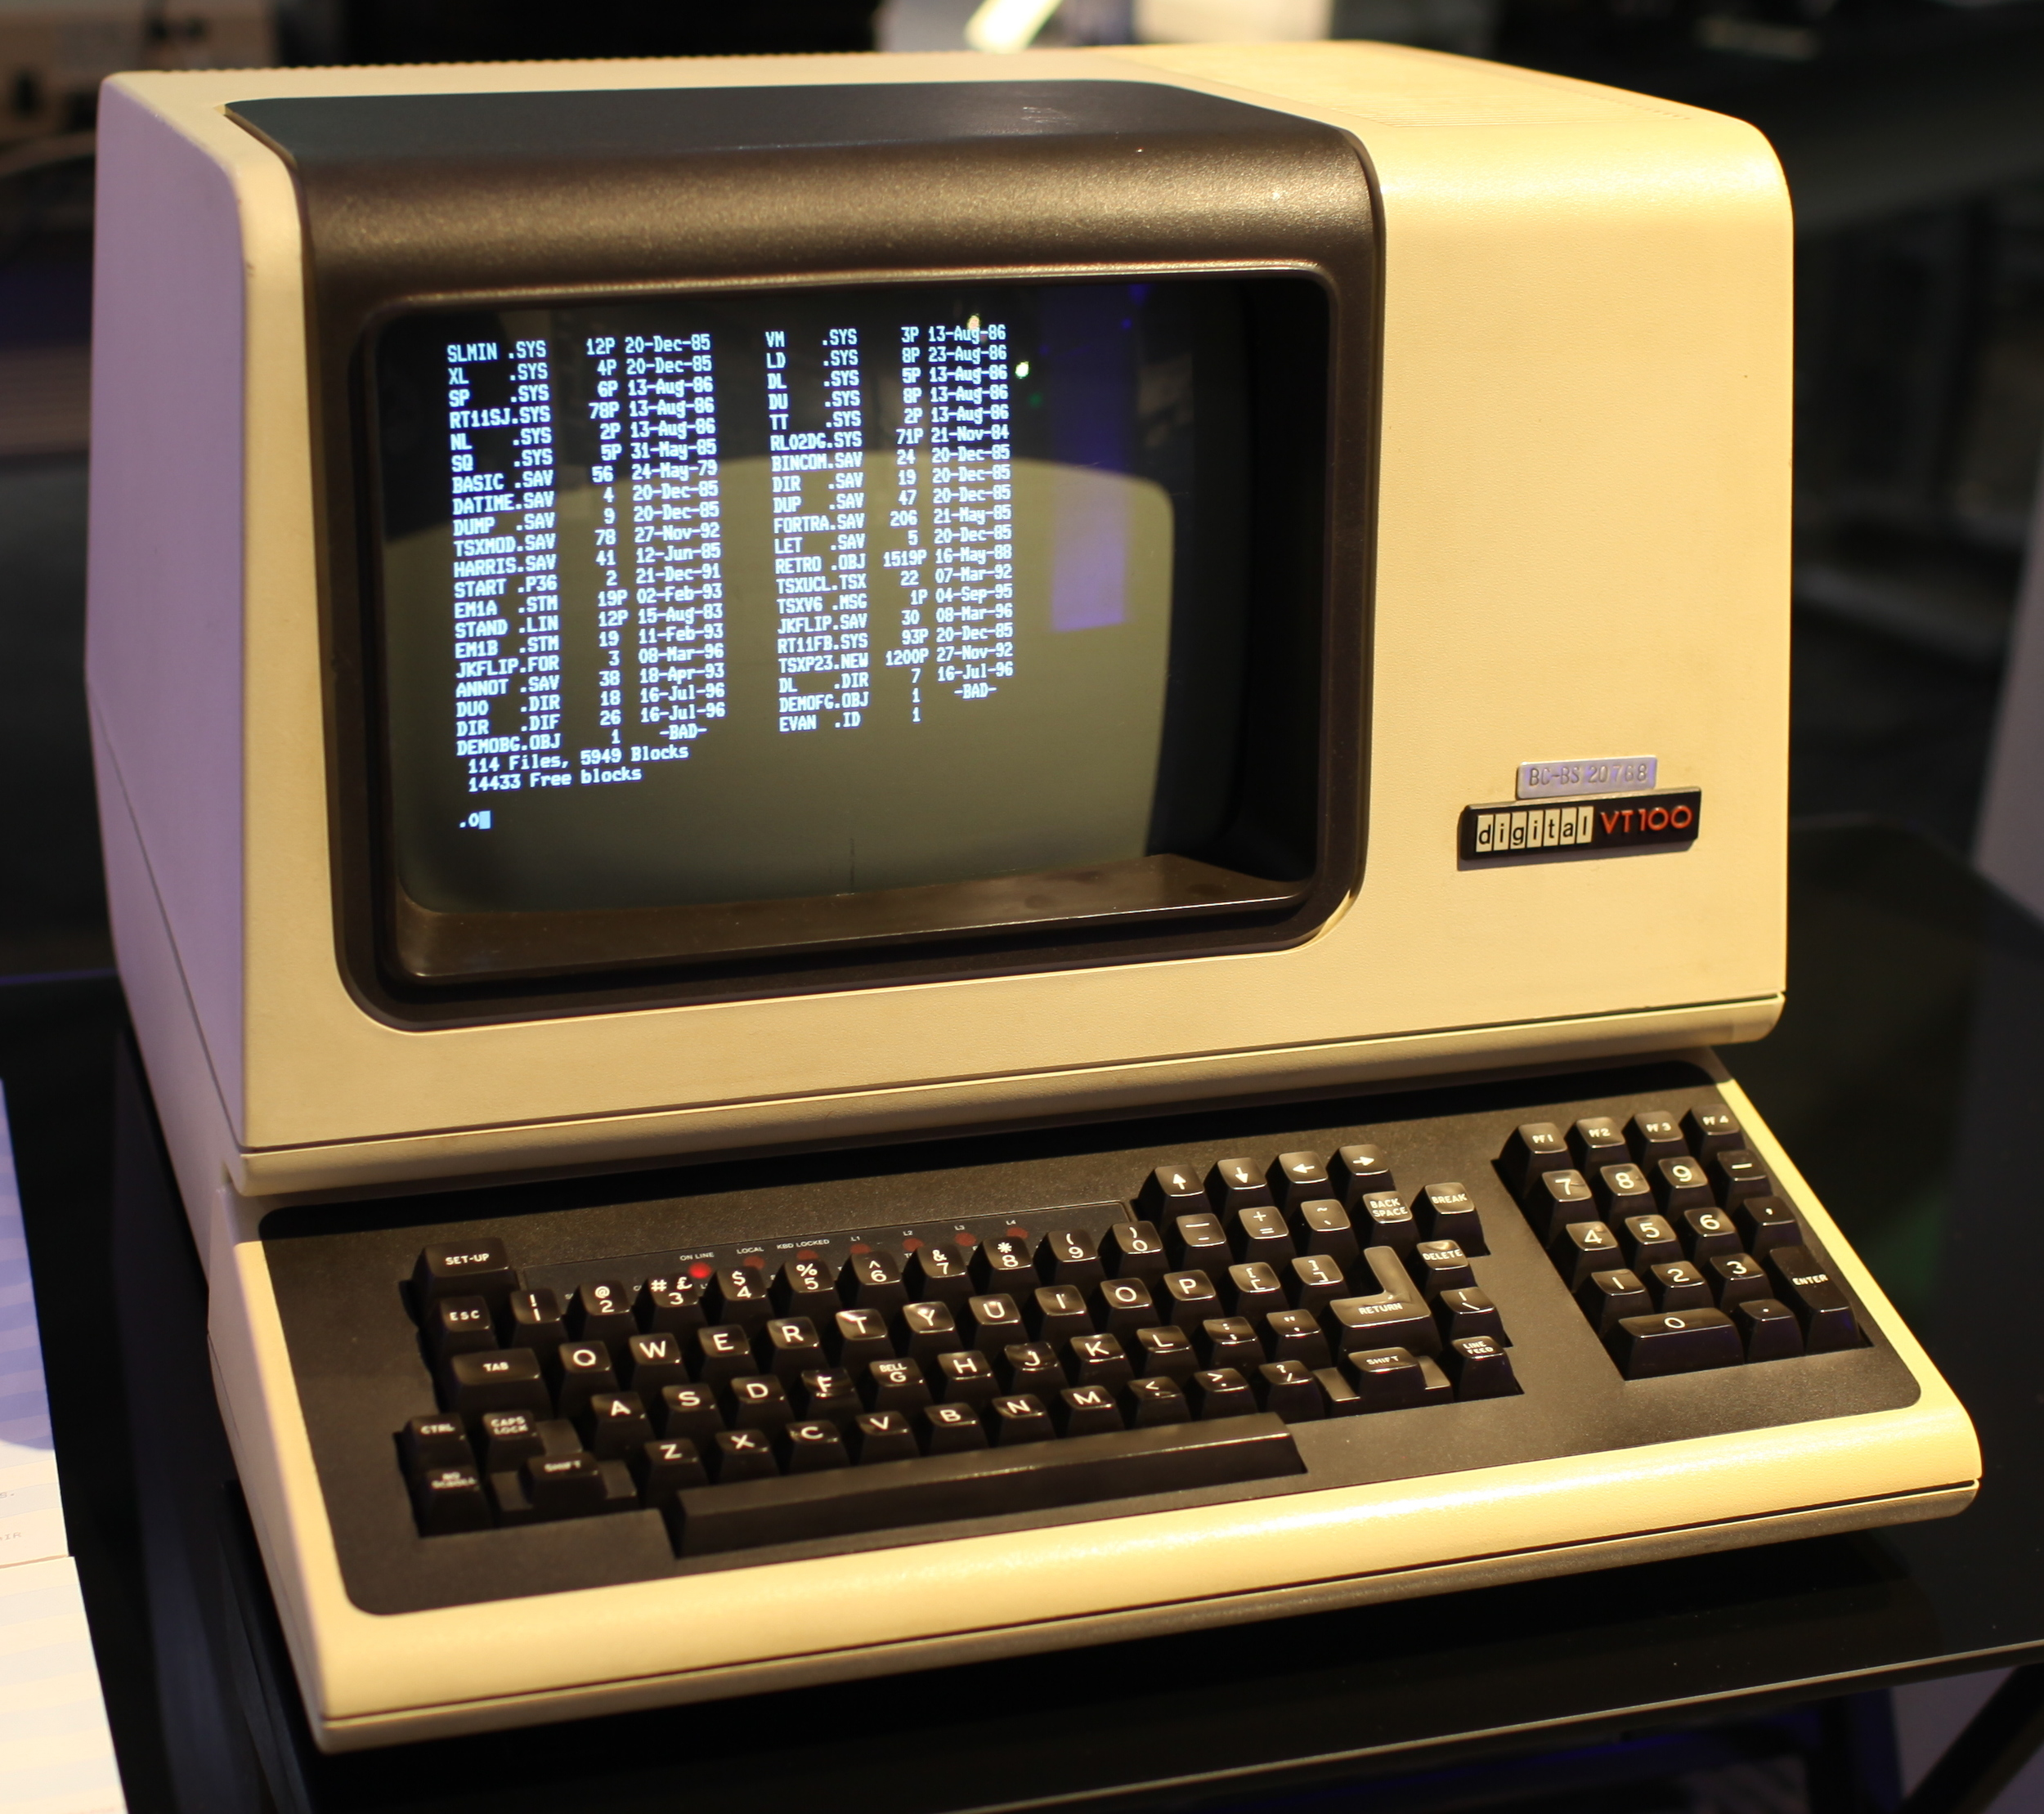 Remember when computers looked like this...? Thought not.